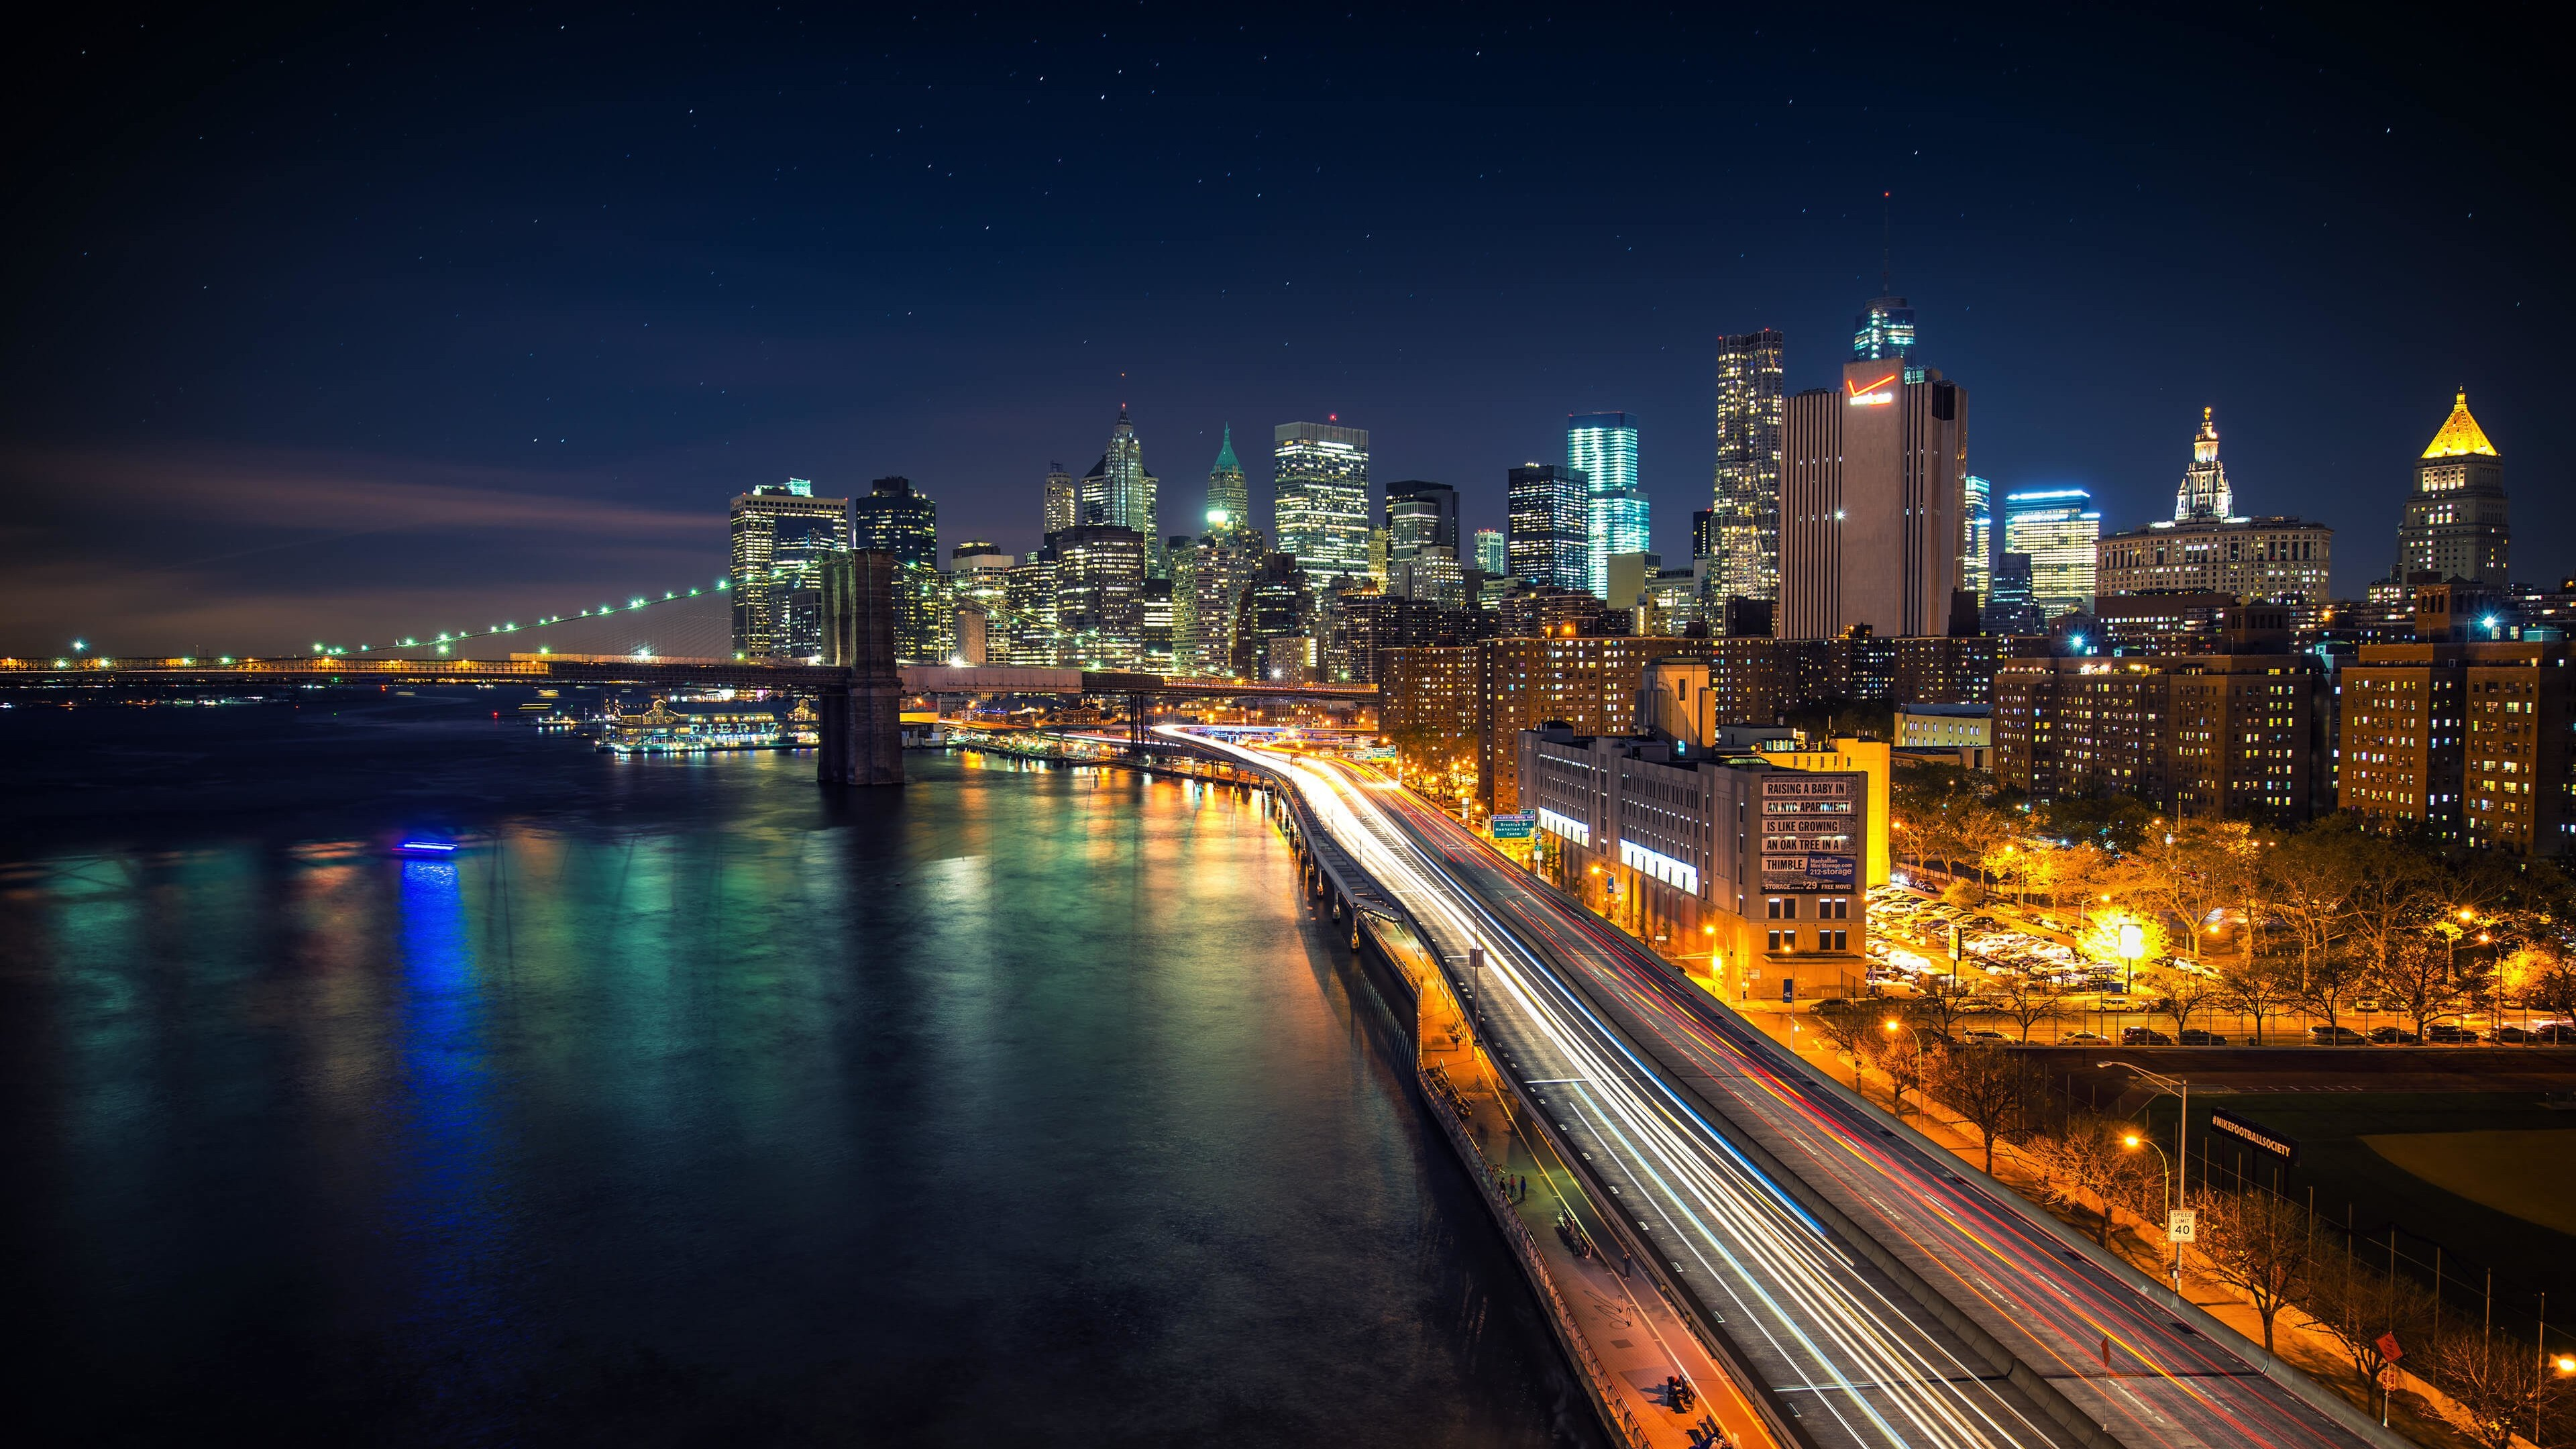 Manhattan New York City Starry Night Scene Wallpaper